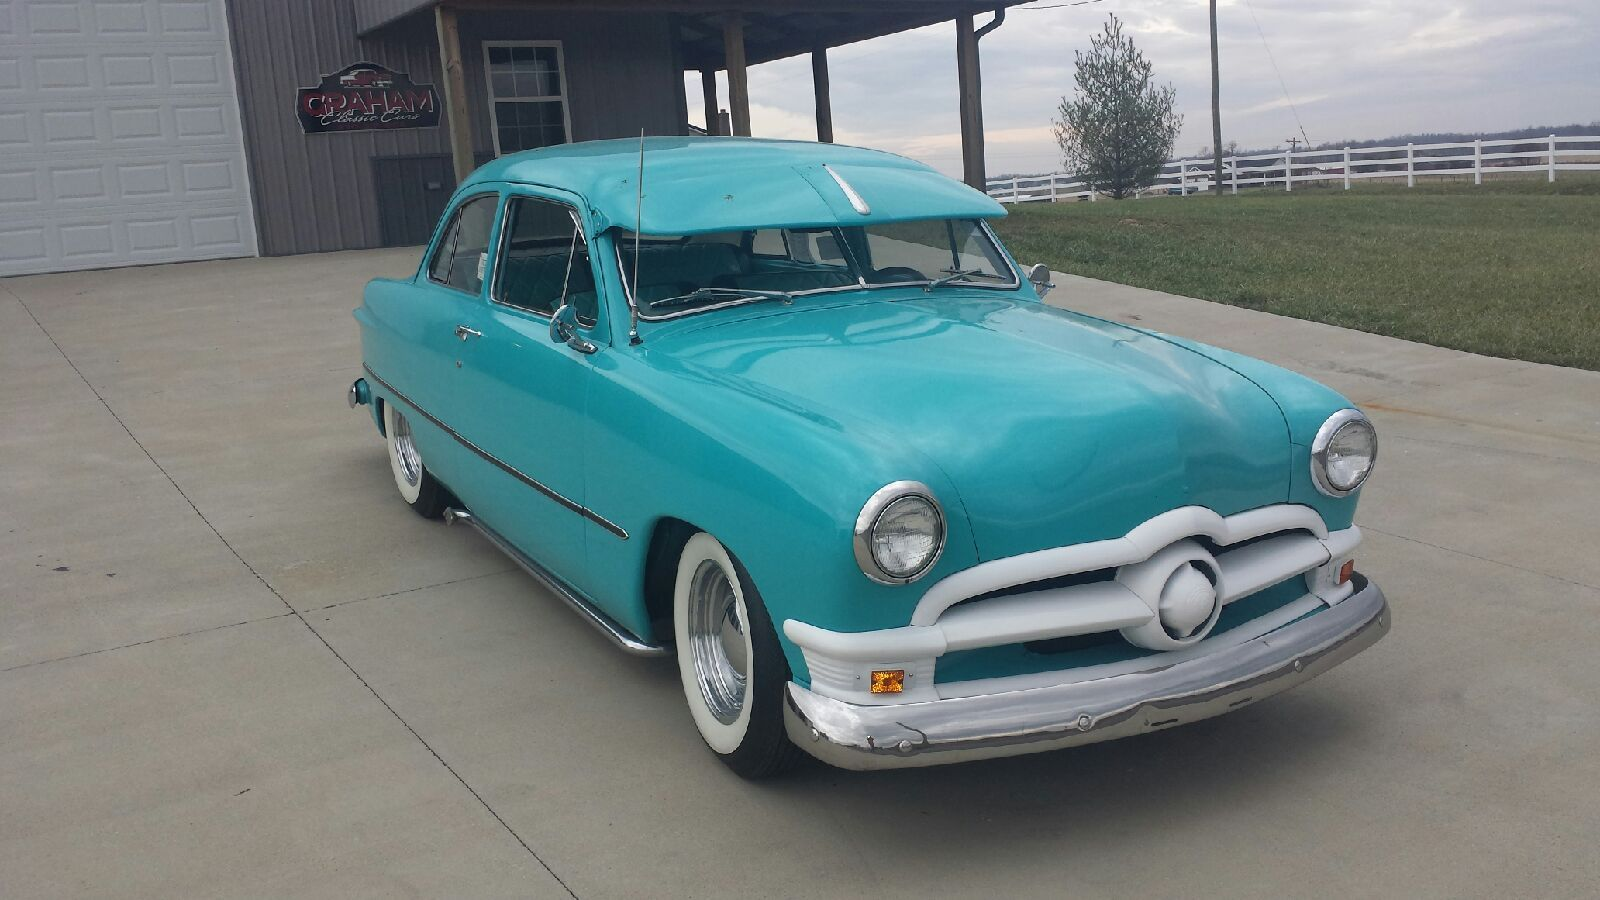 1950 Ford Shoebox Classic Street Rod Cruiser Done Right